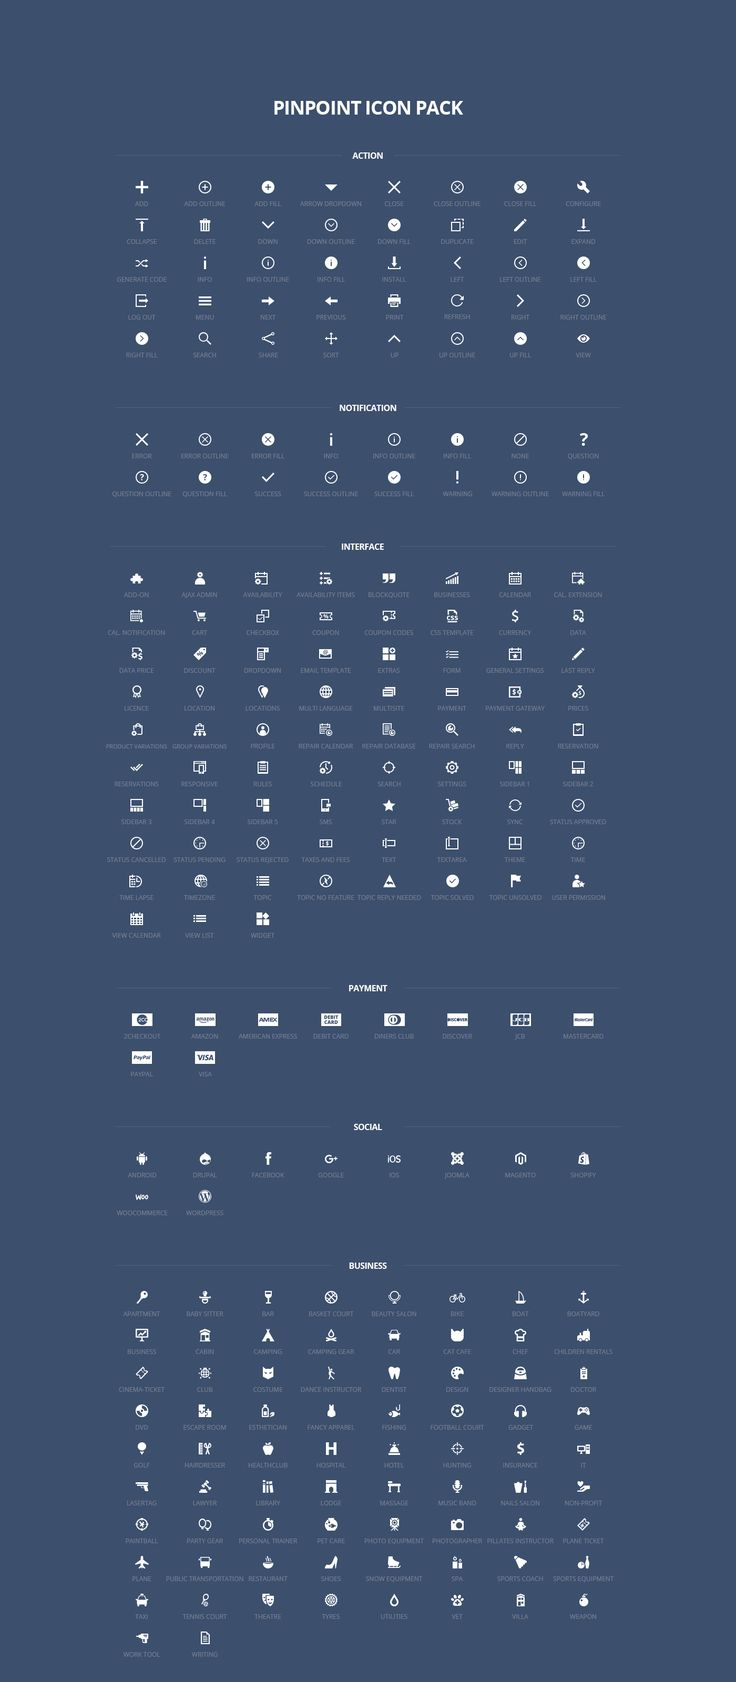 The Pinpoint Icon Pack is a free icon set containing several types of illustrations eg. notification icons, action, social, payment, social, interface.